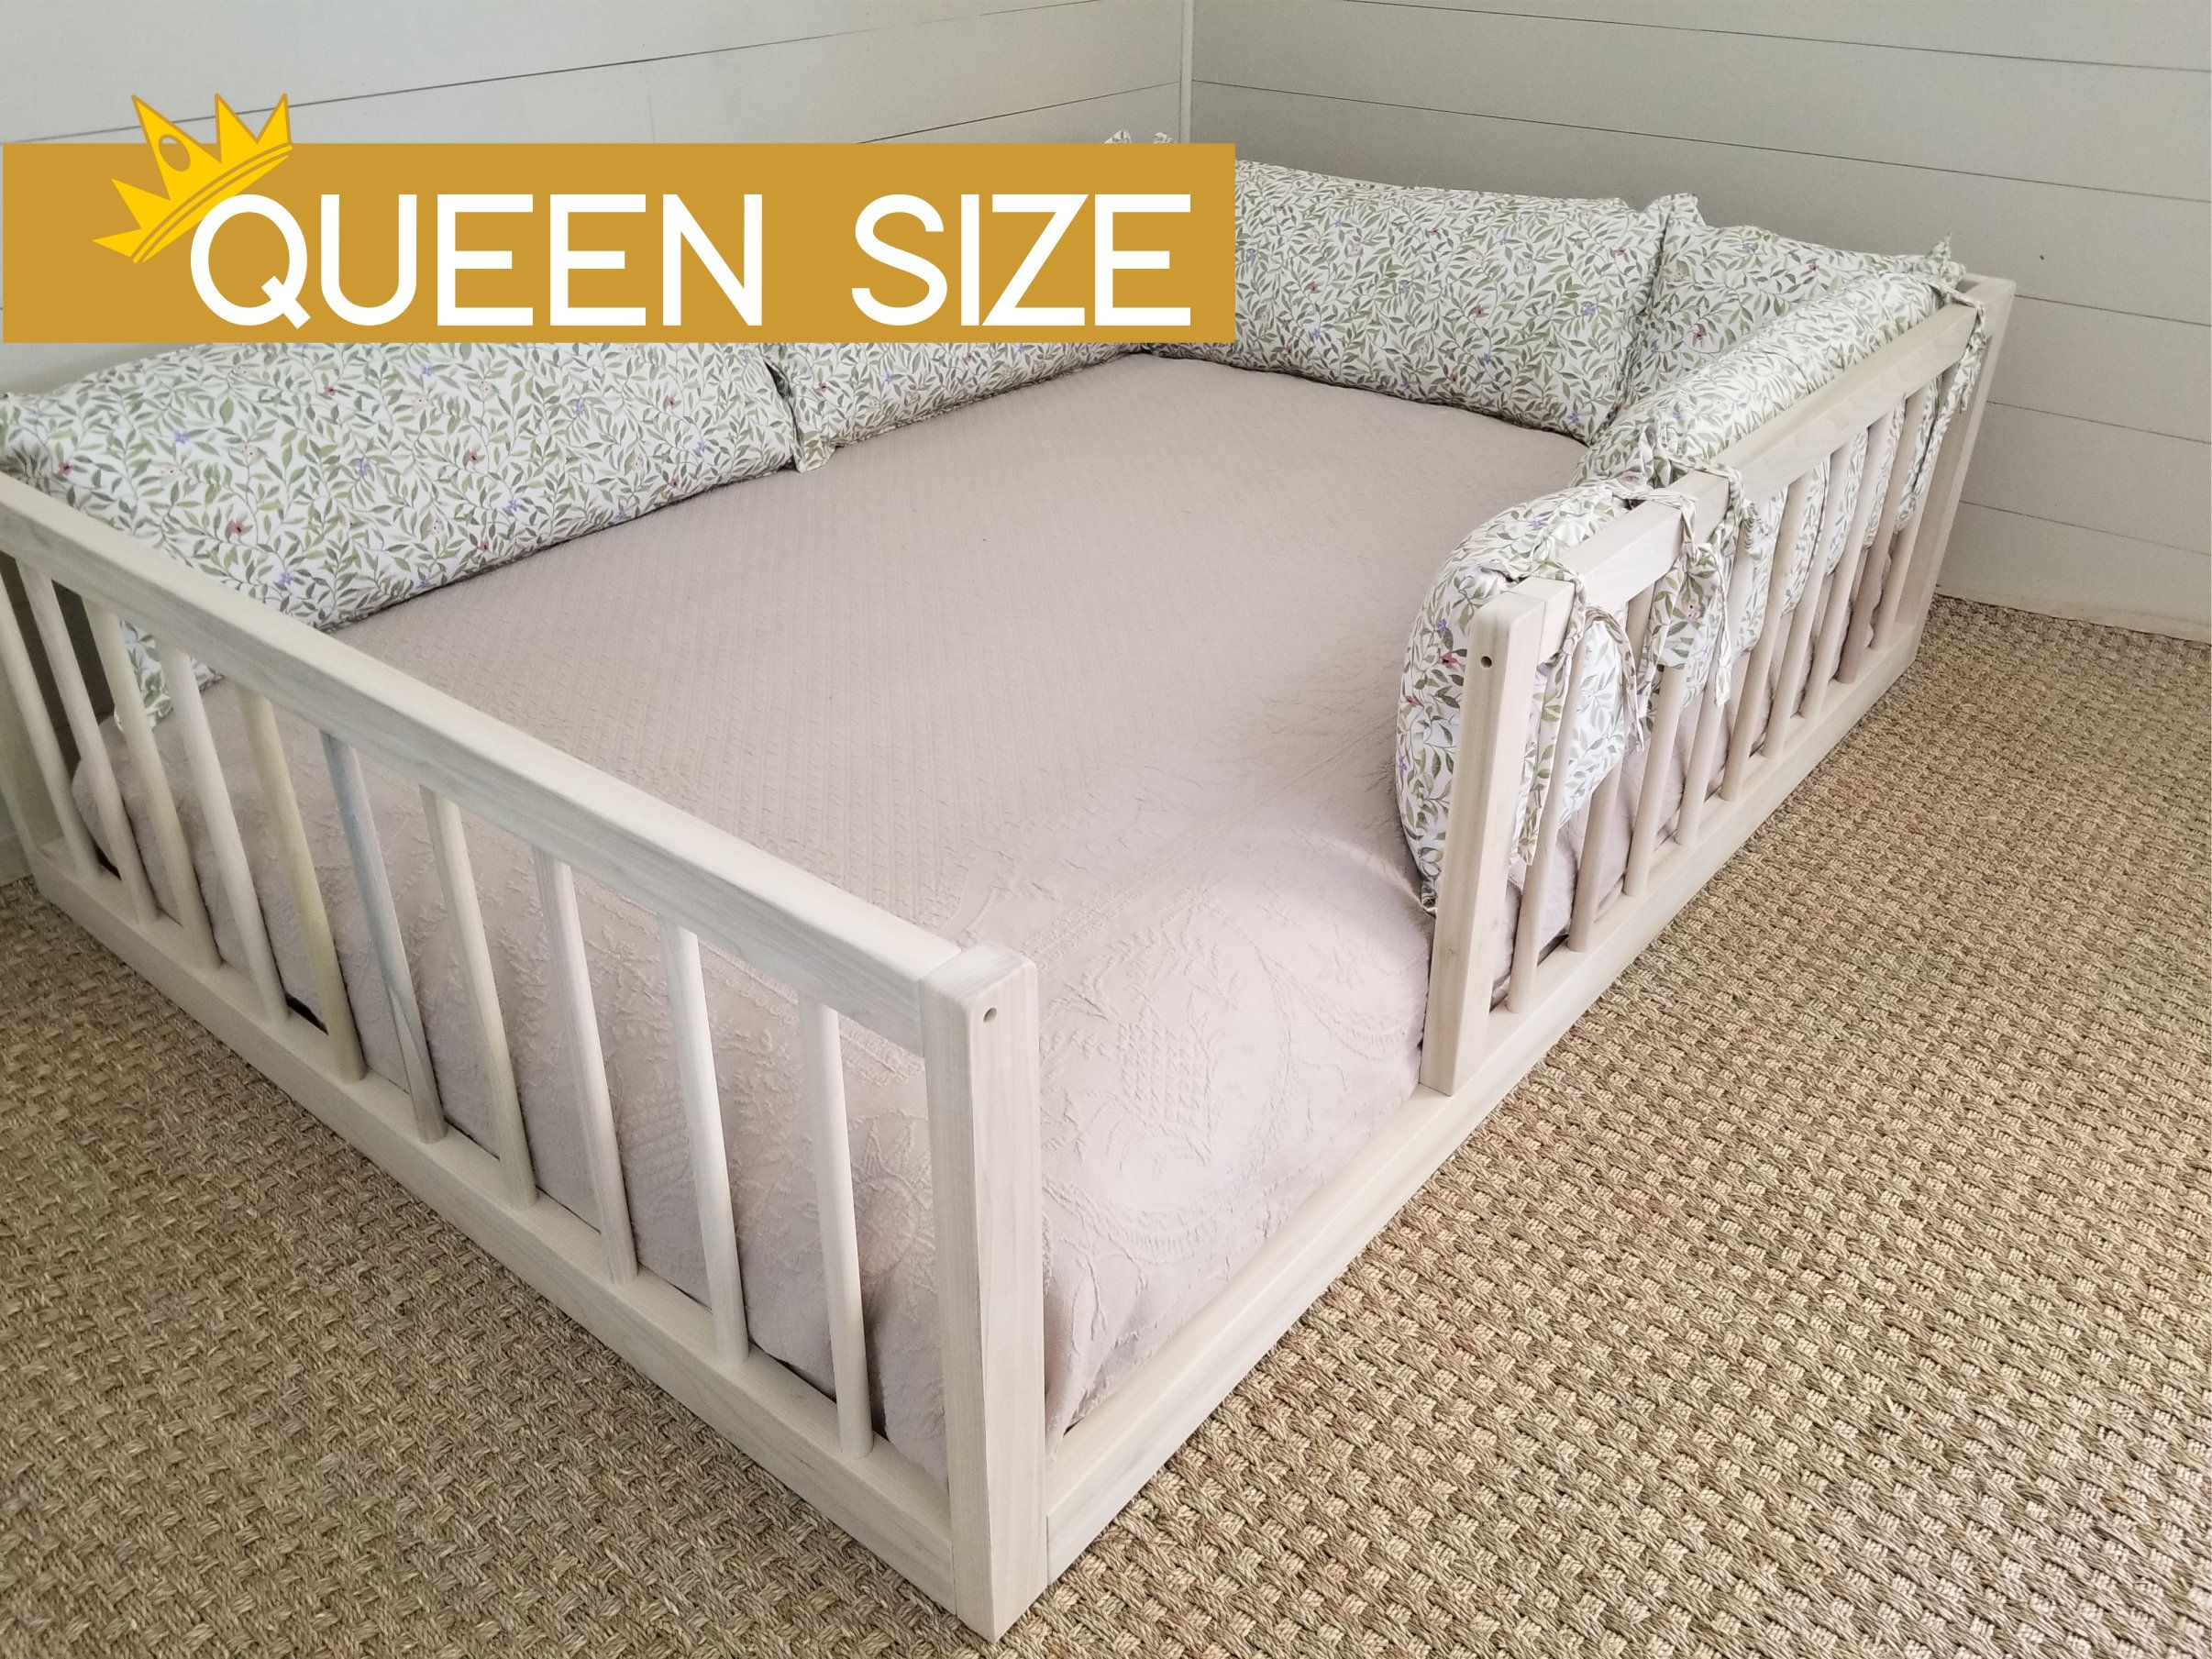 Replacement Wood Bed Rails For Queen King Bed Frame Bed Wood Beds